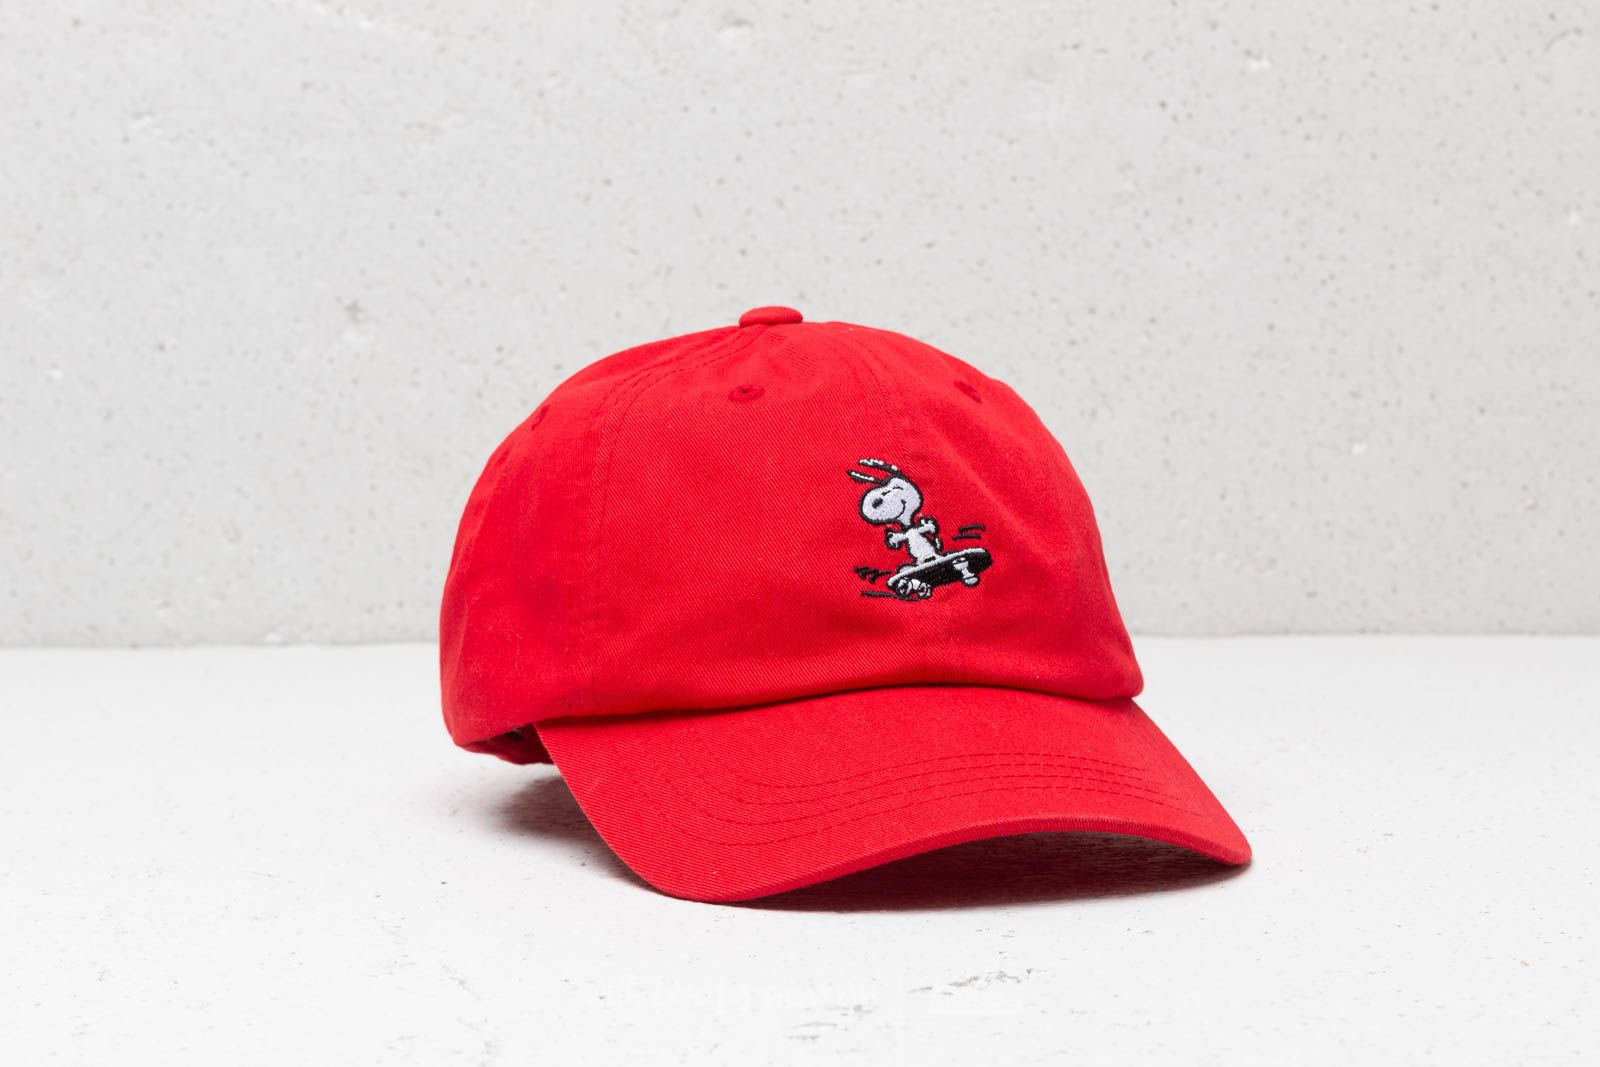 7c31b58d2e7 HUF x Peanuts Snoopy Sk8 6 P Cap Red at a great price  32 buy at